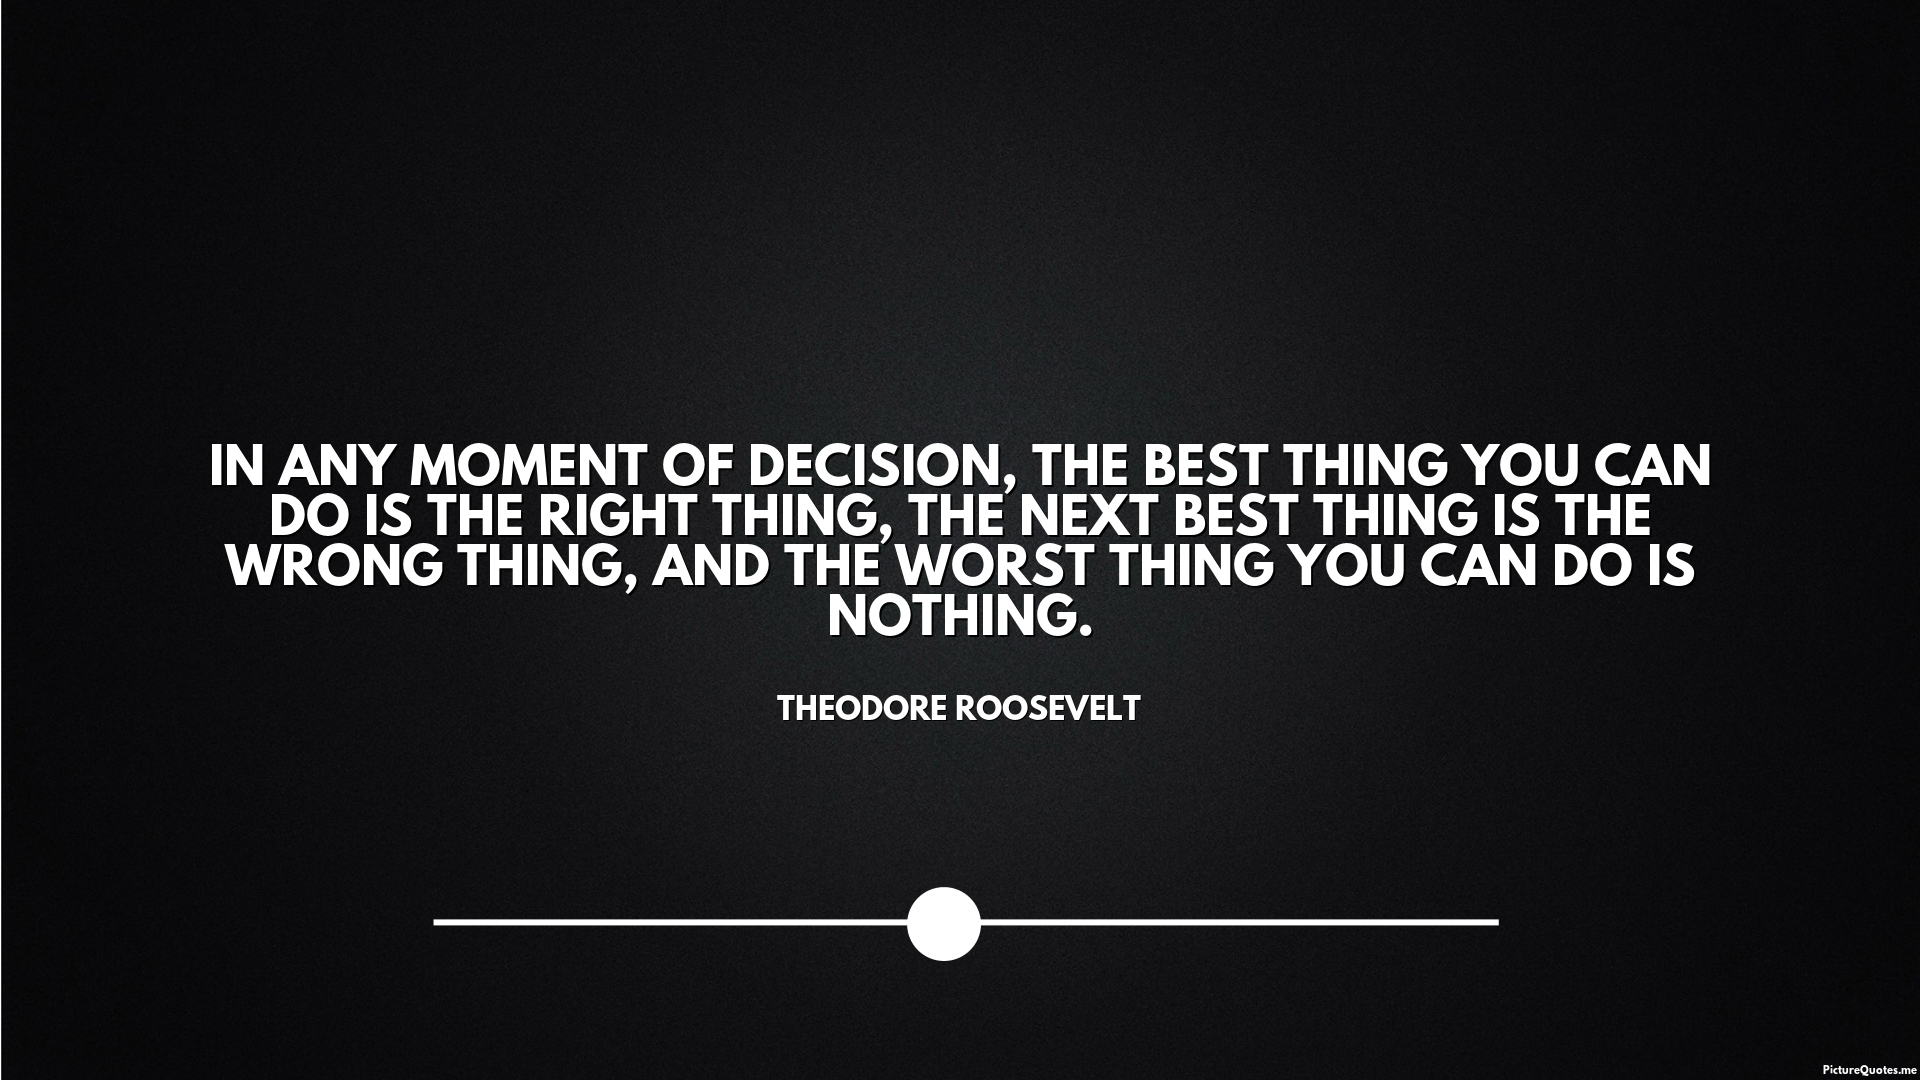 Theodore Roosevelt Quote In Any Moment Of Decision The Best Thing You Can Do Is The Right